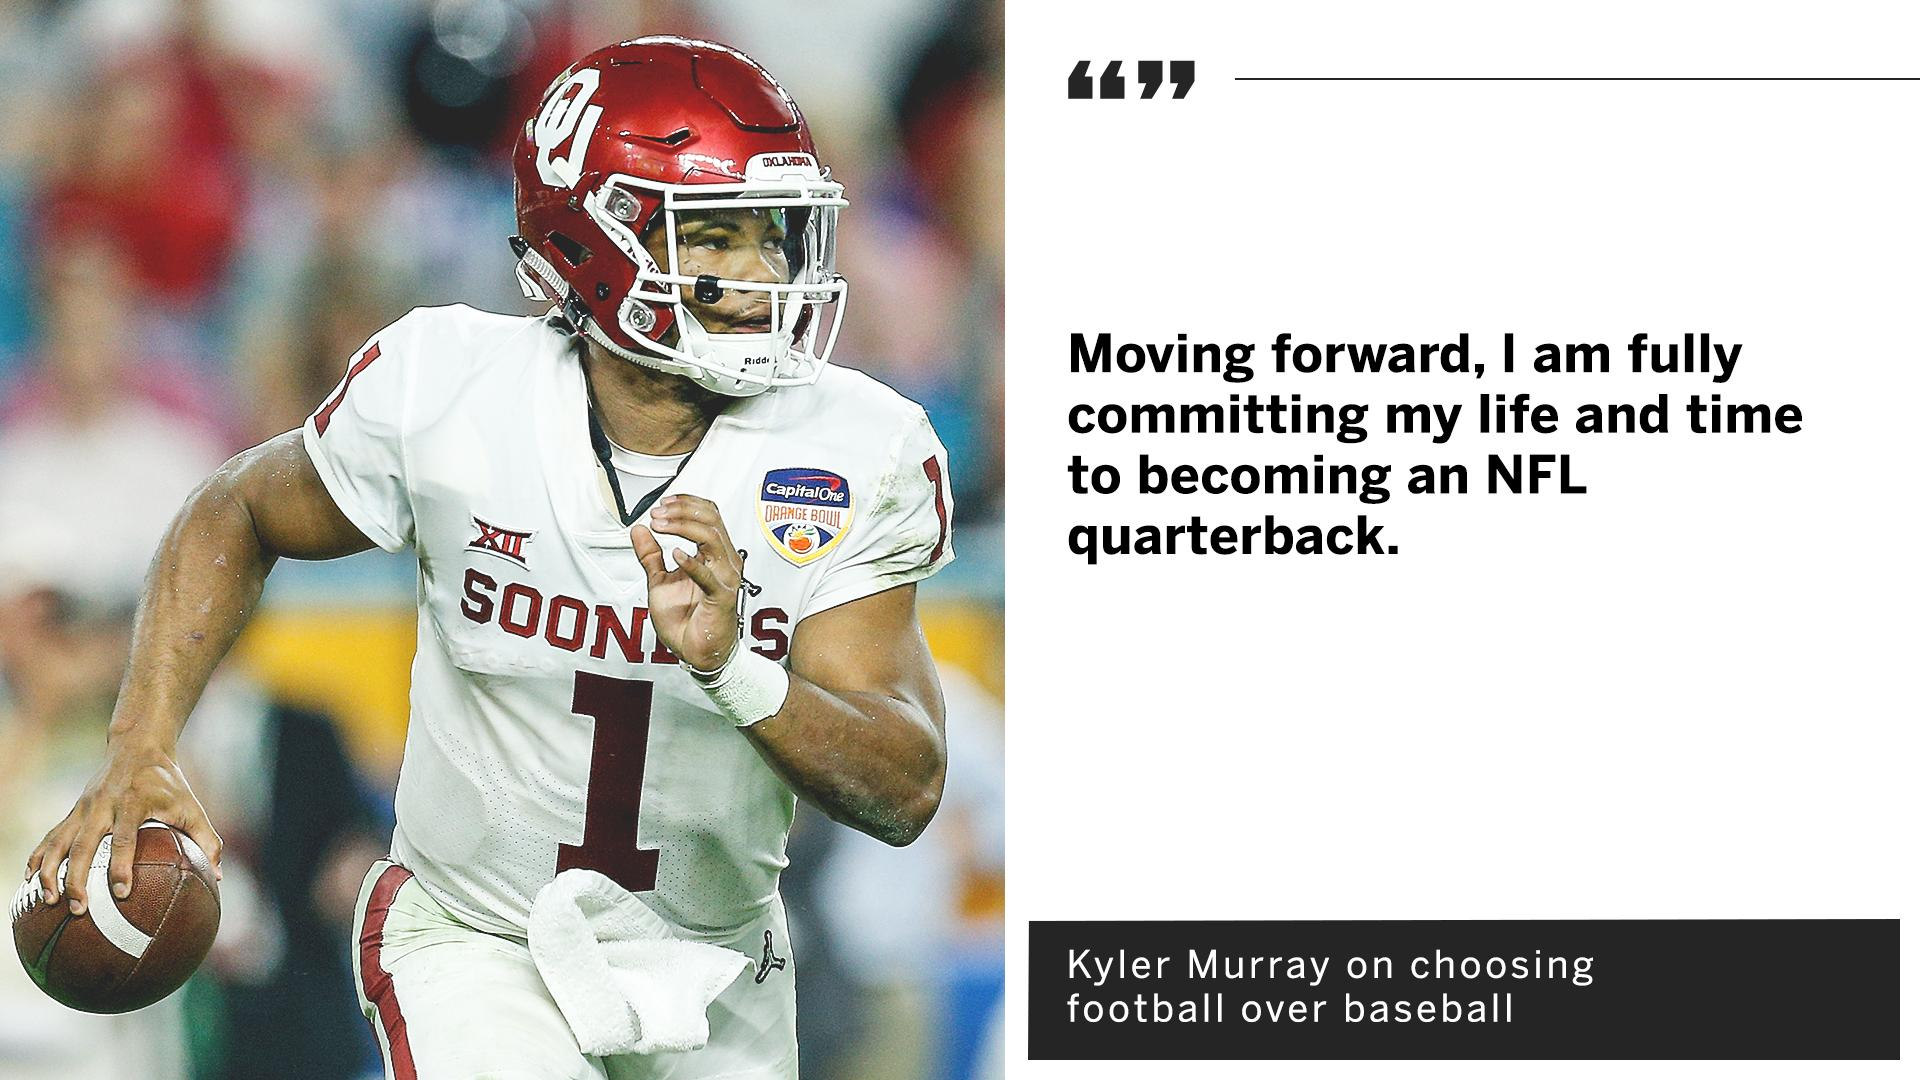 Kyler Murray has apparently made his choice. https://t.co/7DXhHxX5lG